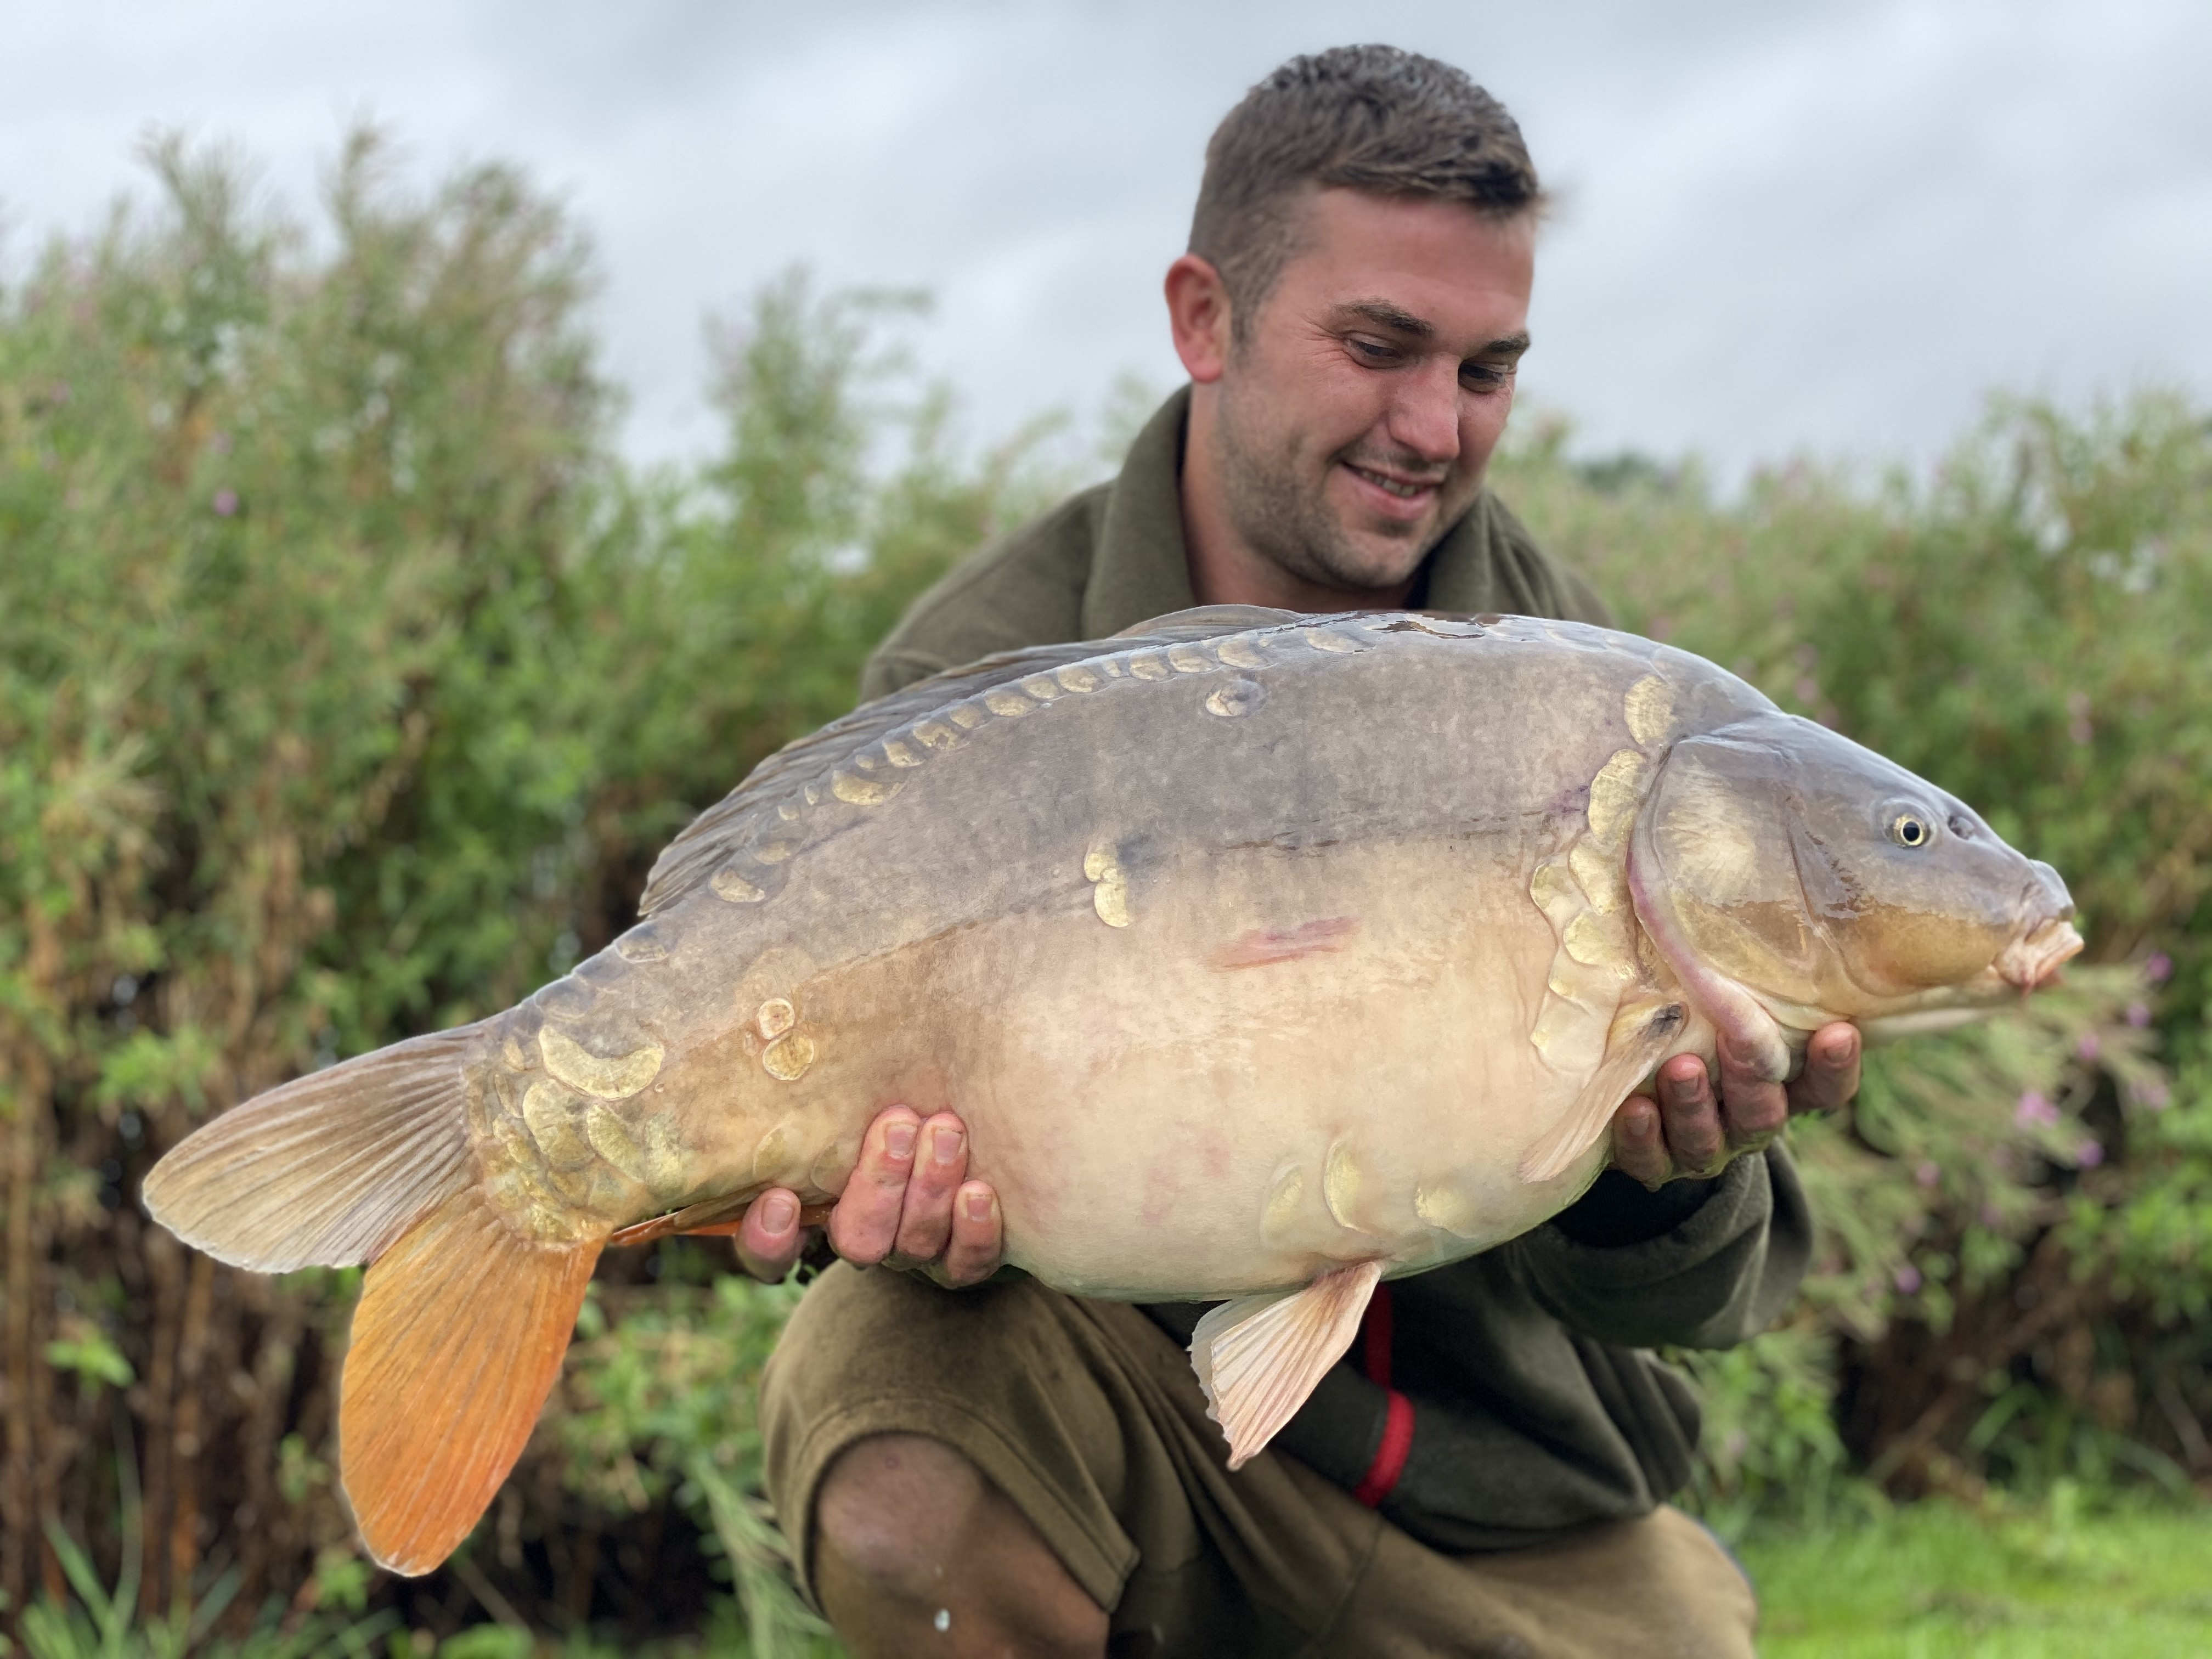 28lb 08oz  caught on